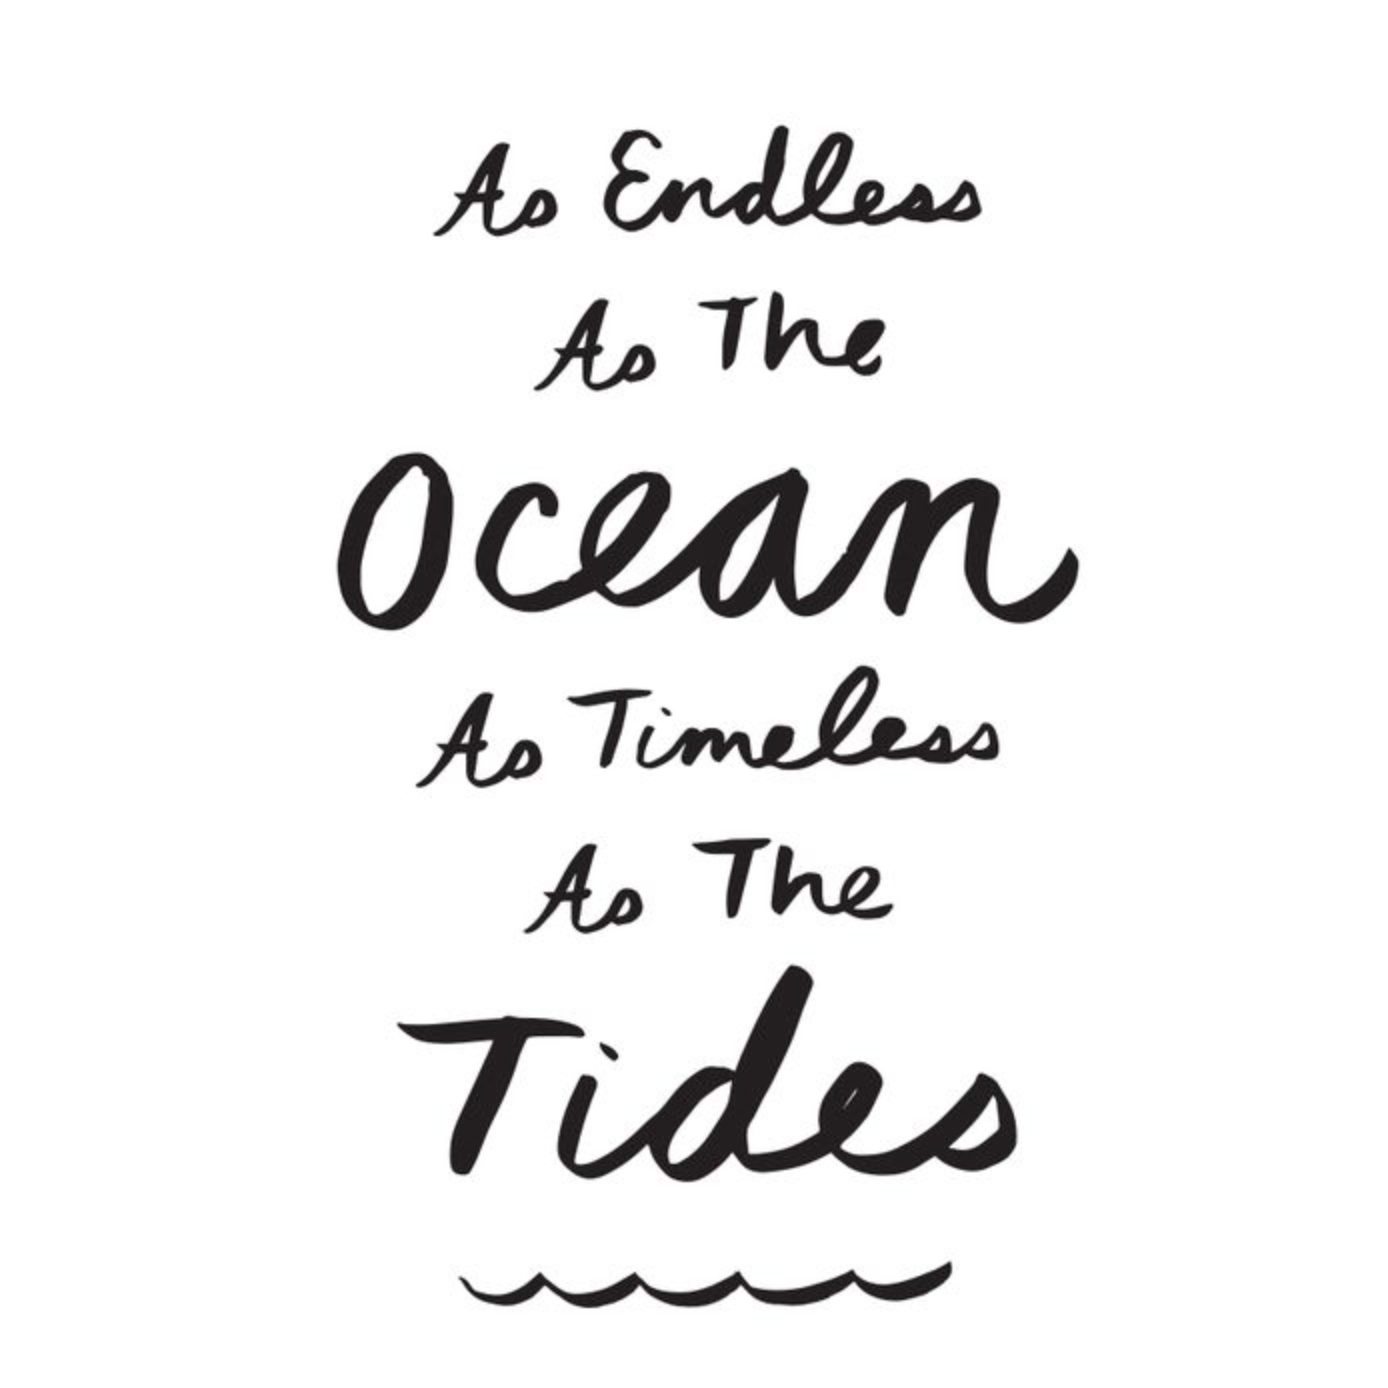 17 Timeless Love Quotes: As Endless As The Ocean, As Timeless As The Tides. #quotes